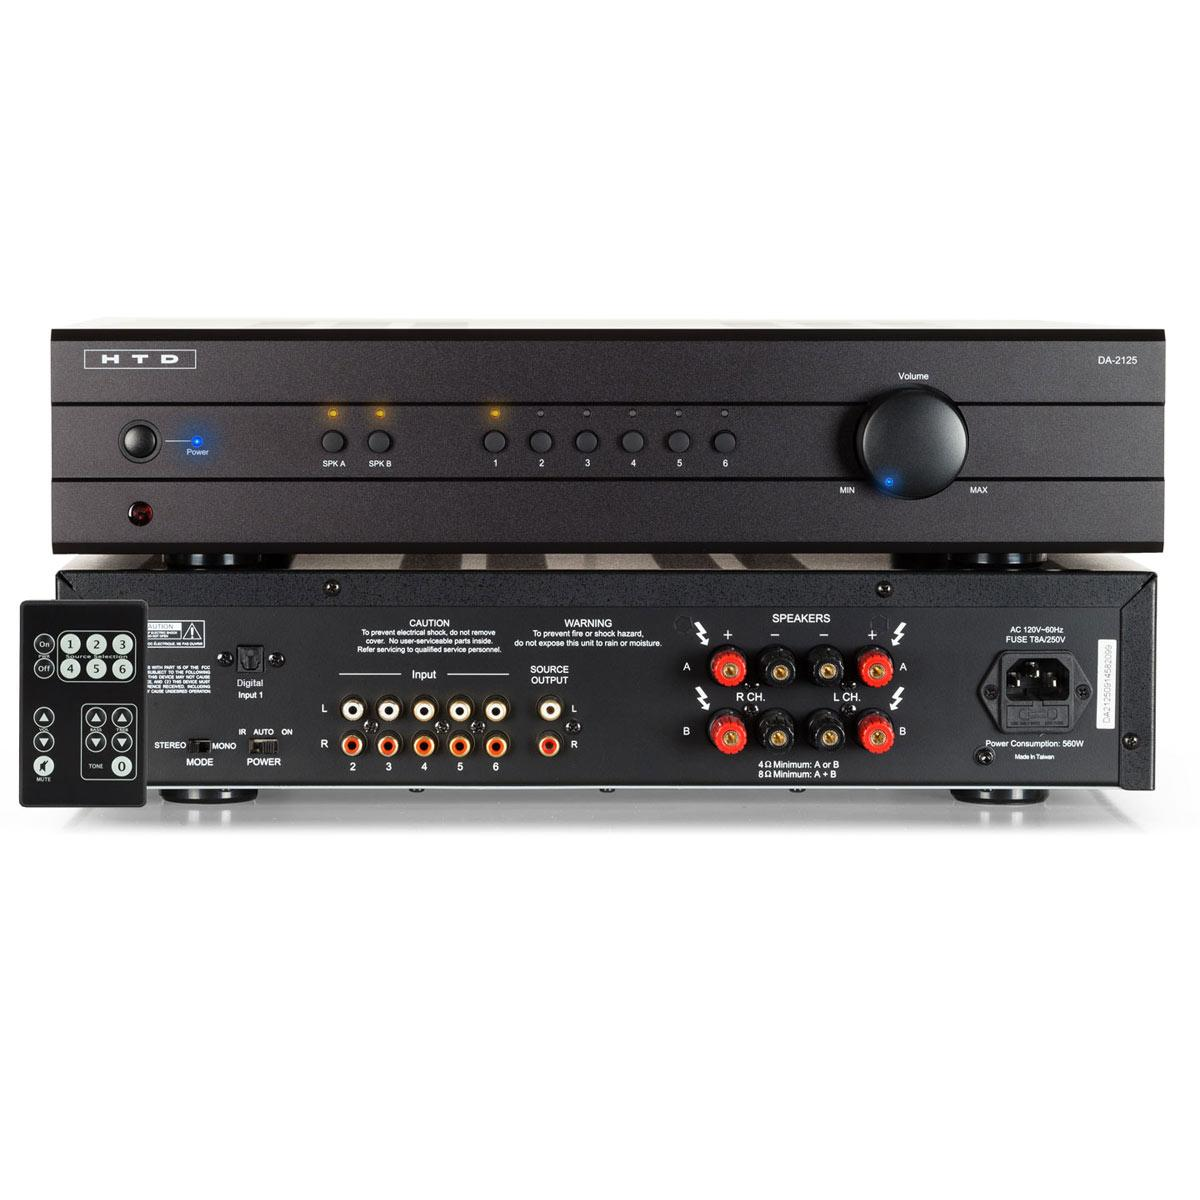 DA 2125 Multi Source Stereo Digital Amplifier